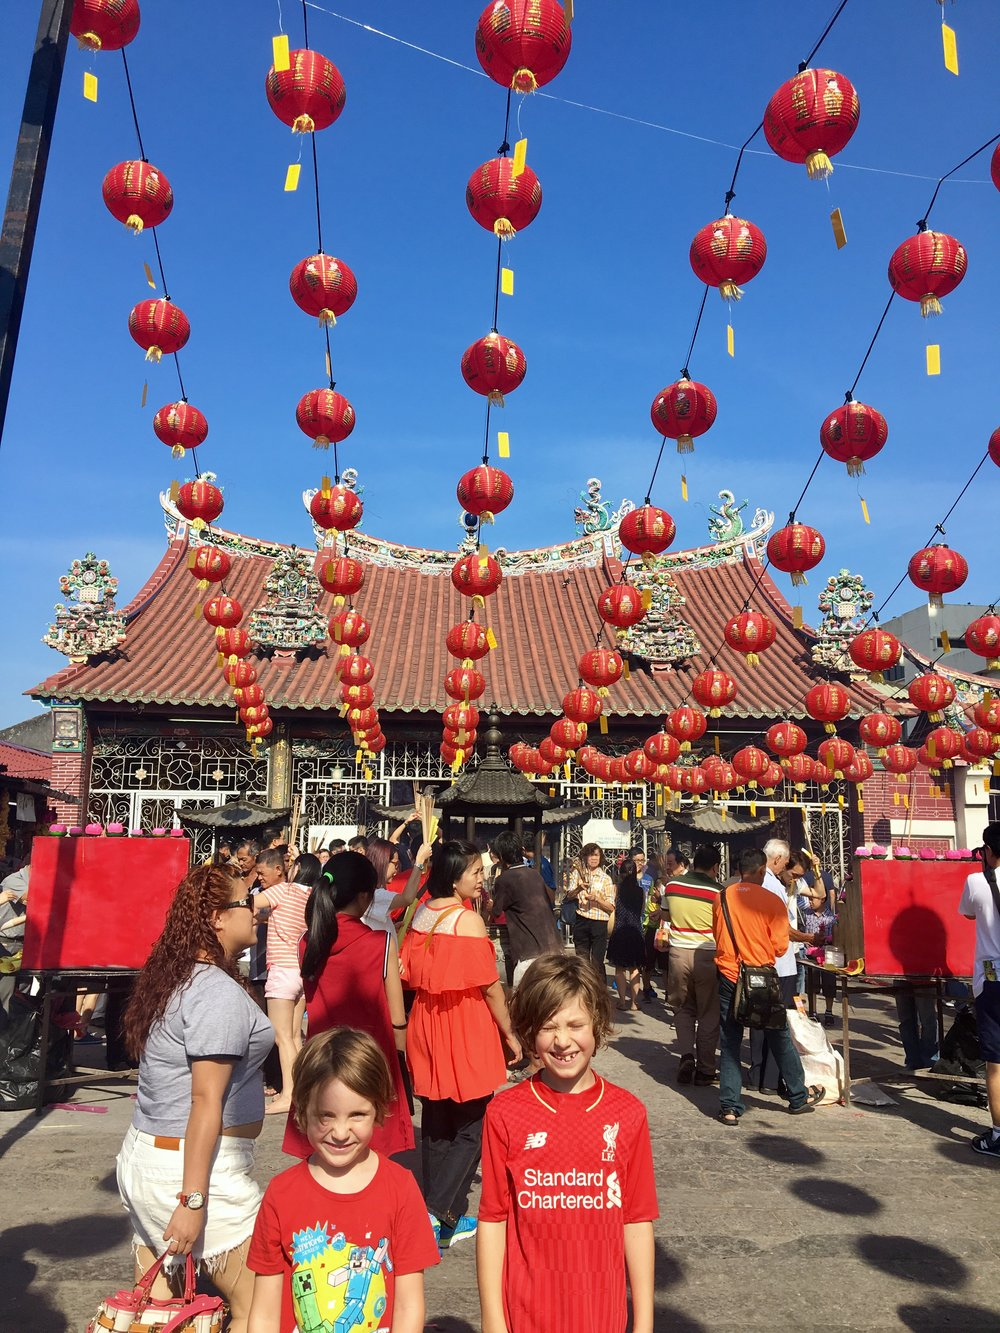 We went out in search of Chinese New Year festivities and found bright, loud craziness!